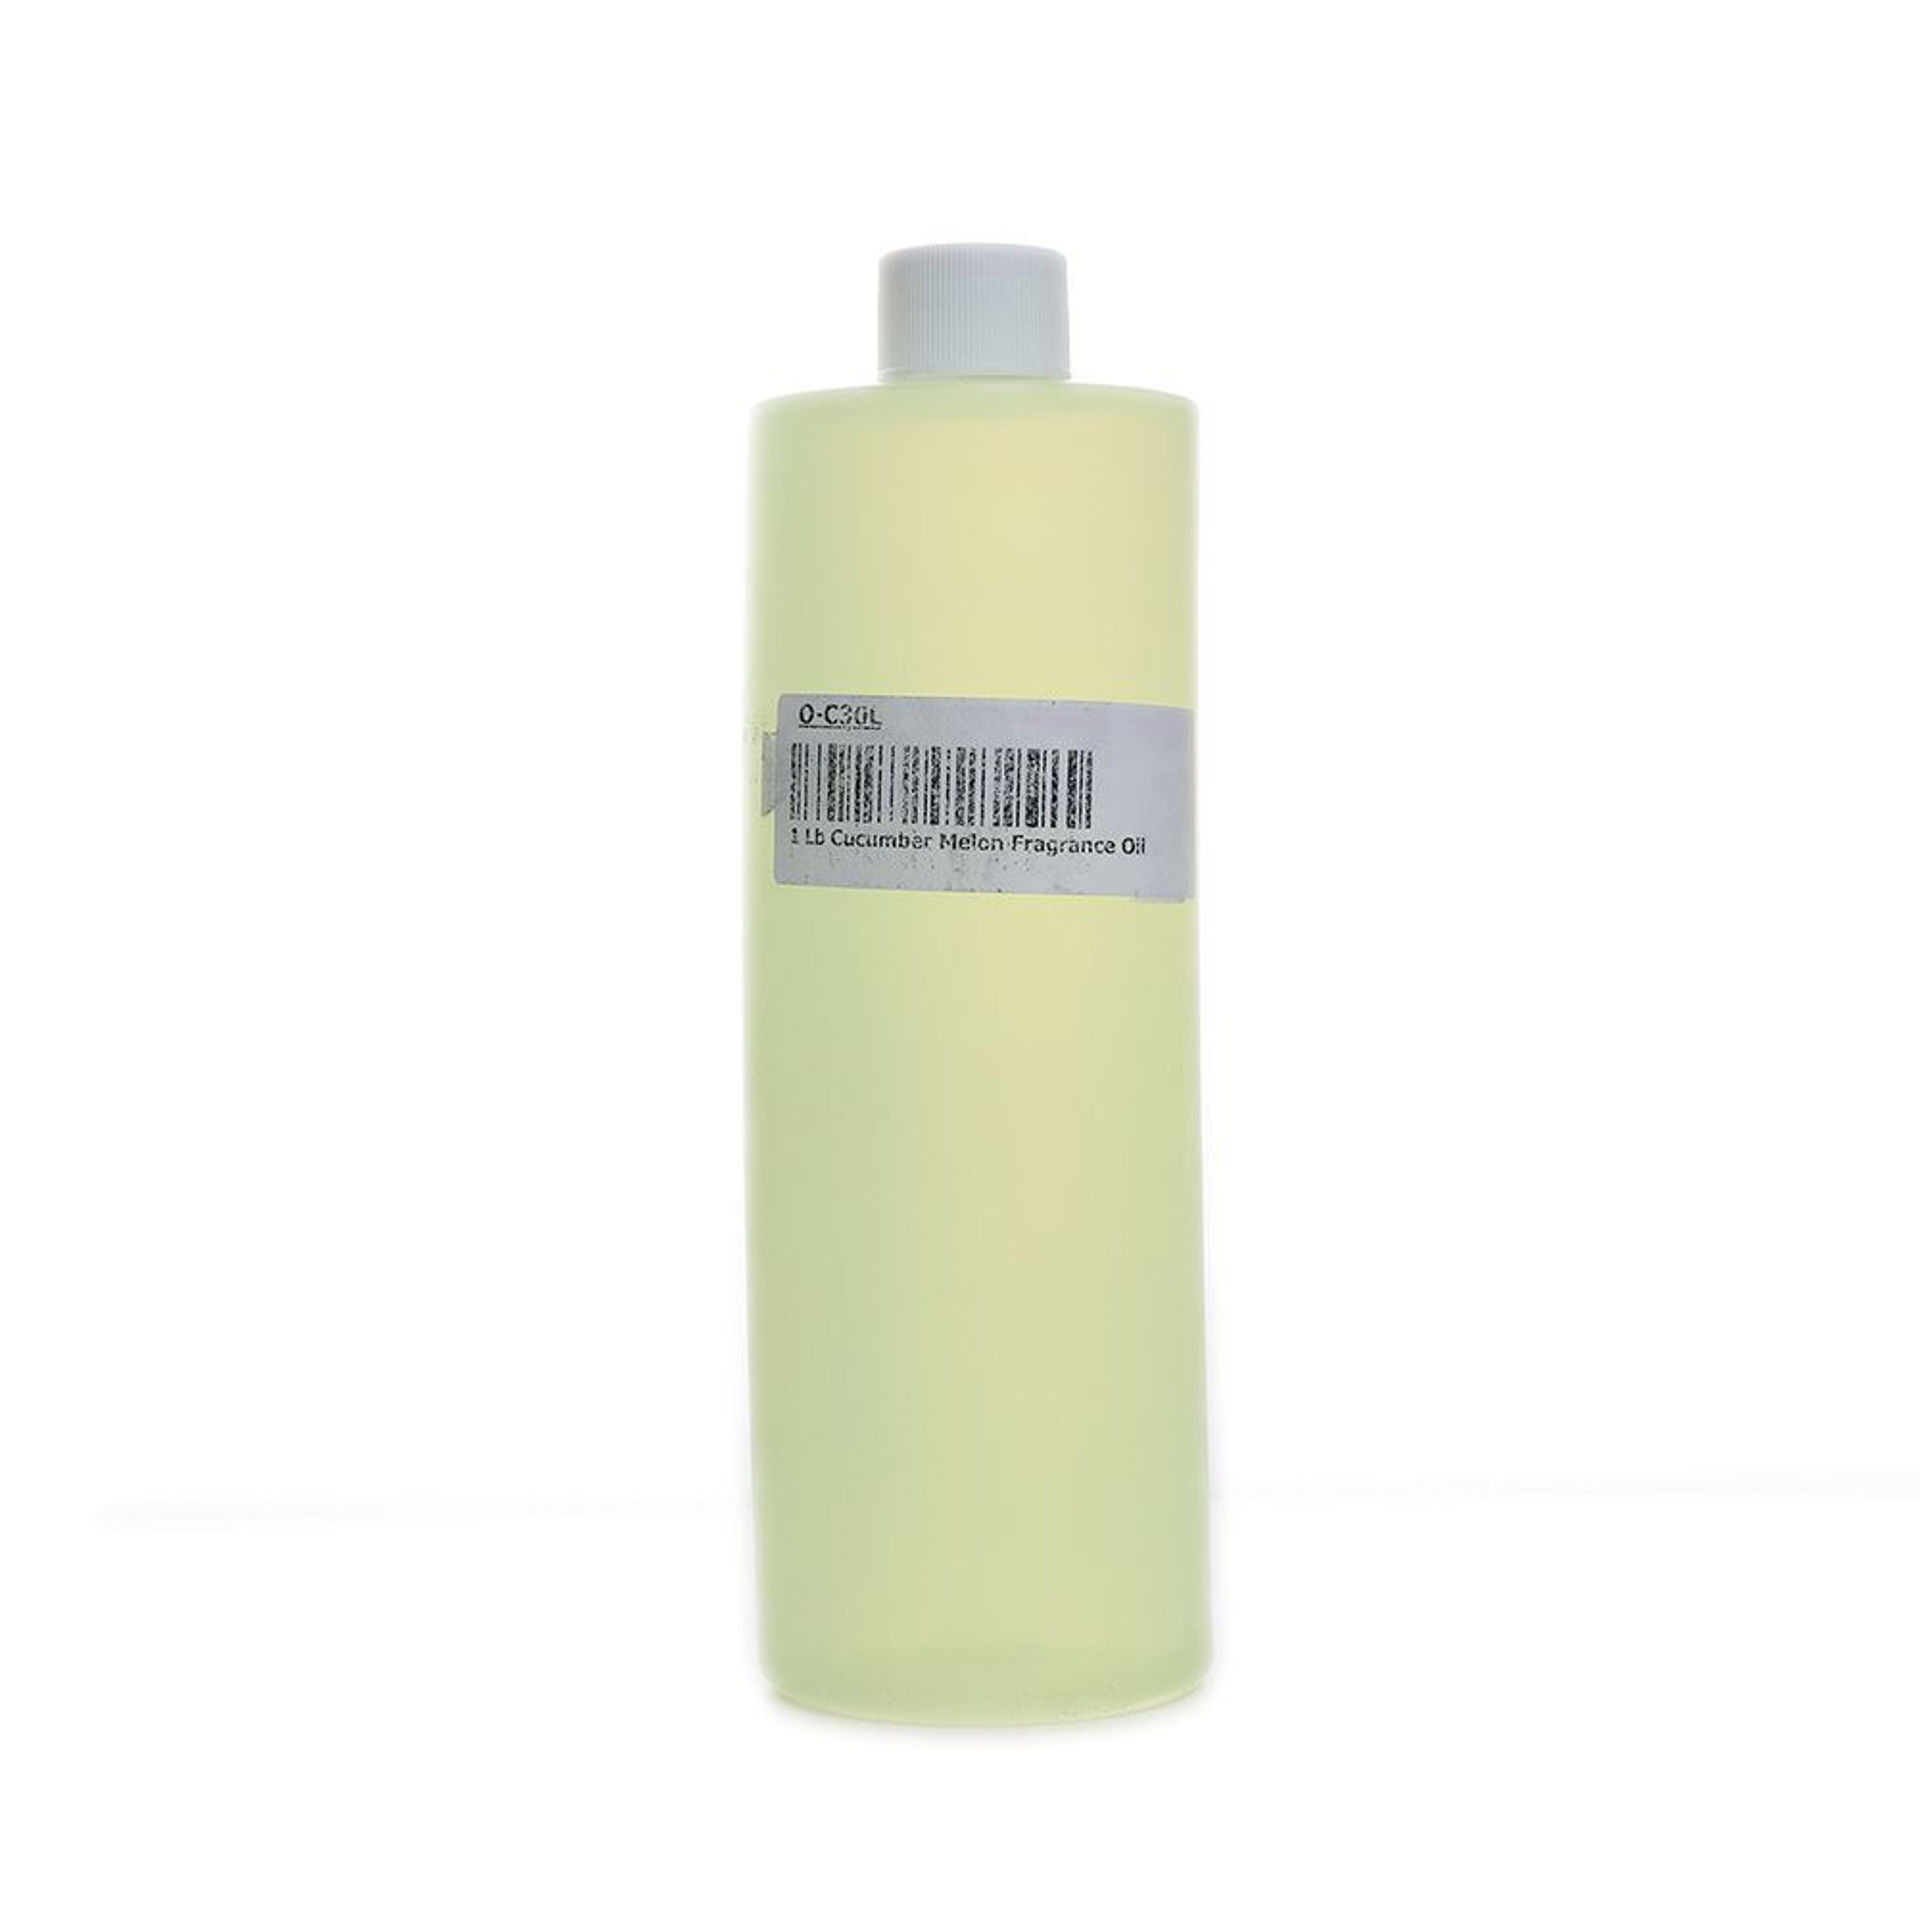 Picture of 1 Lb Cucumber Melon Fragrance Oil